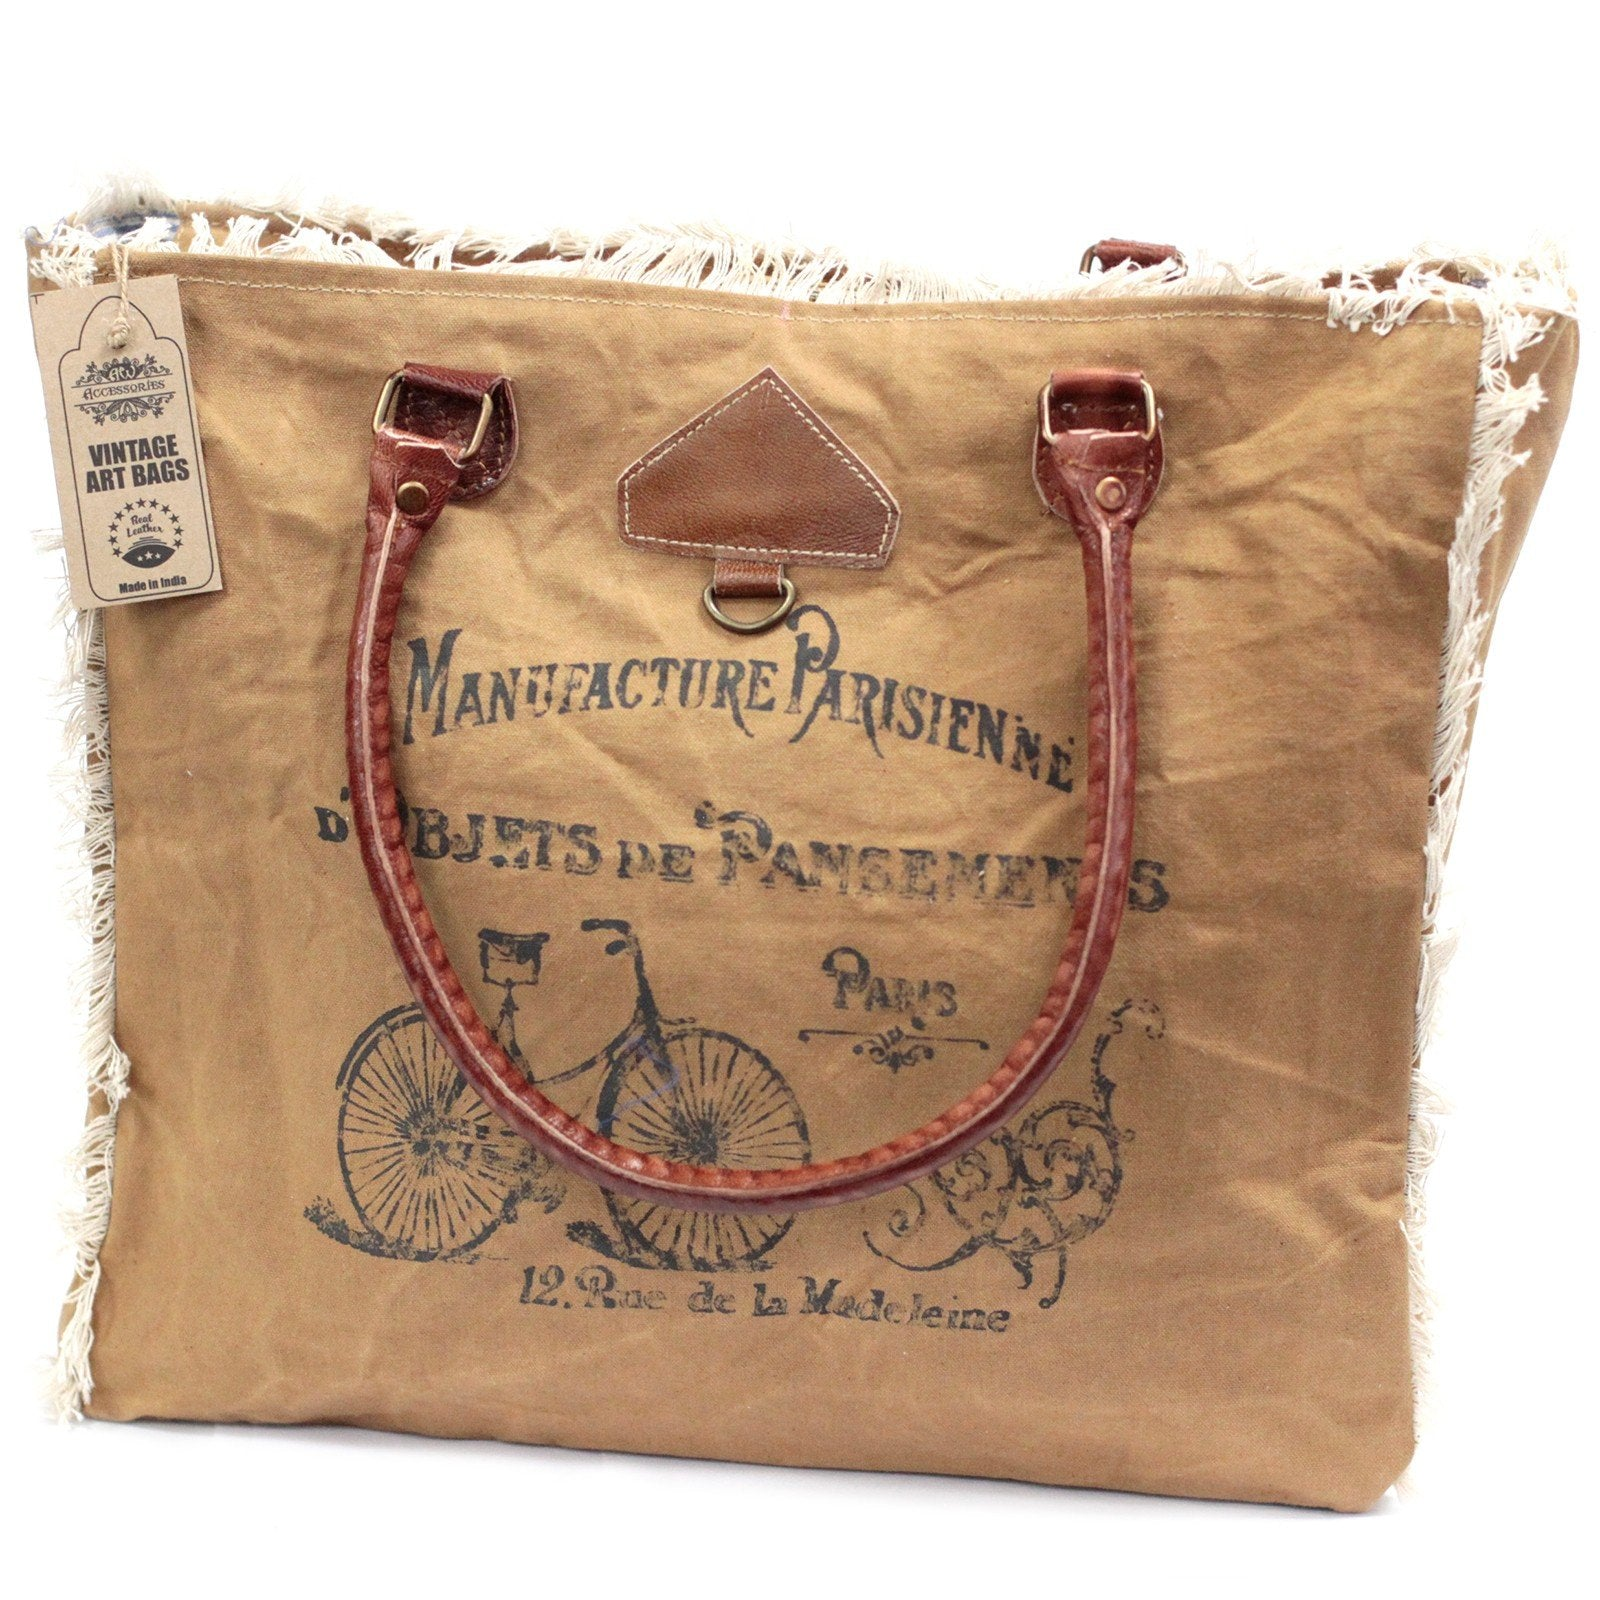 Vintage Bag - D'object de Pansements - Gift2U.co.uk - Unique gifts online to You